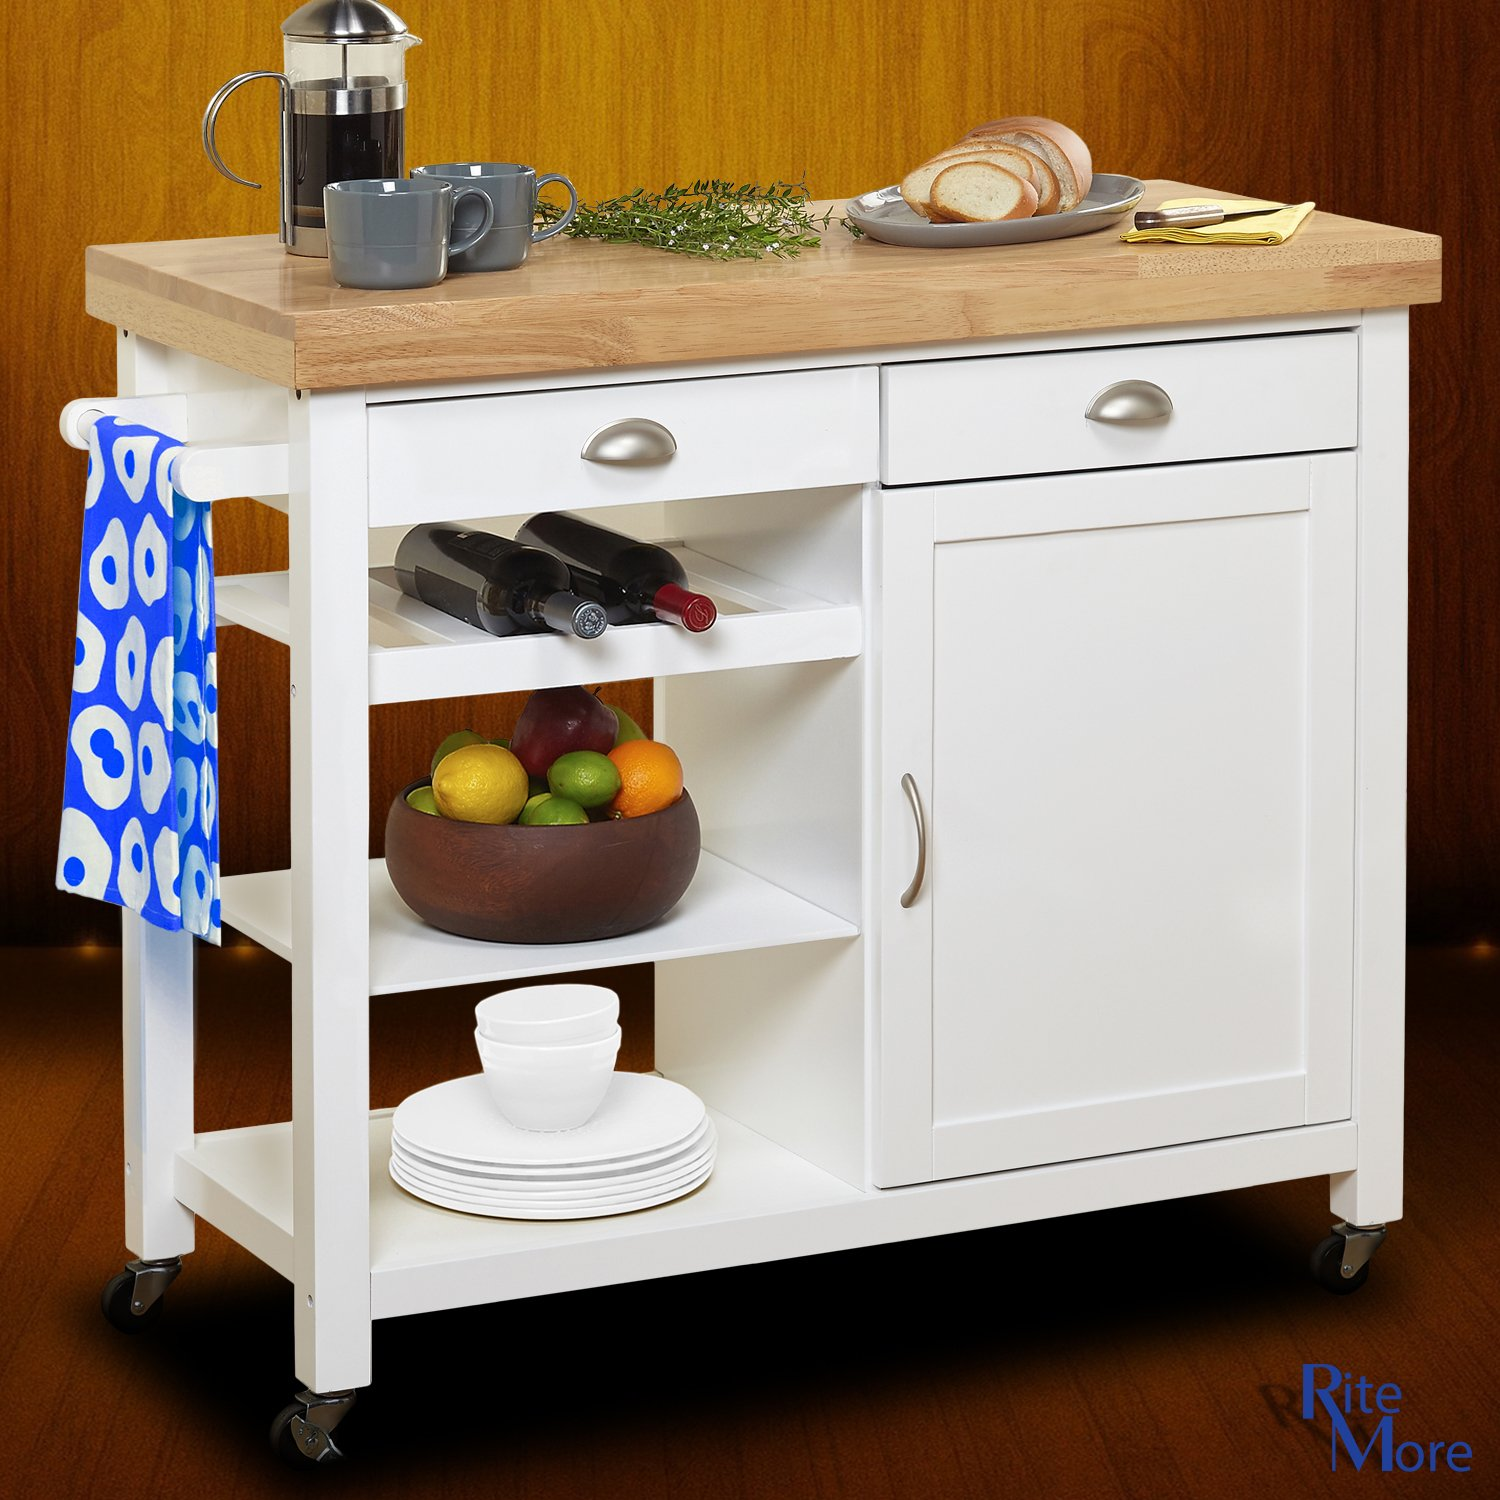 8 Kitchen Island: Kitchen Islands With Breakfast Bar: Amazon.com